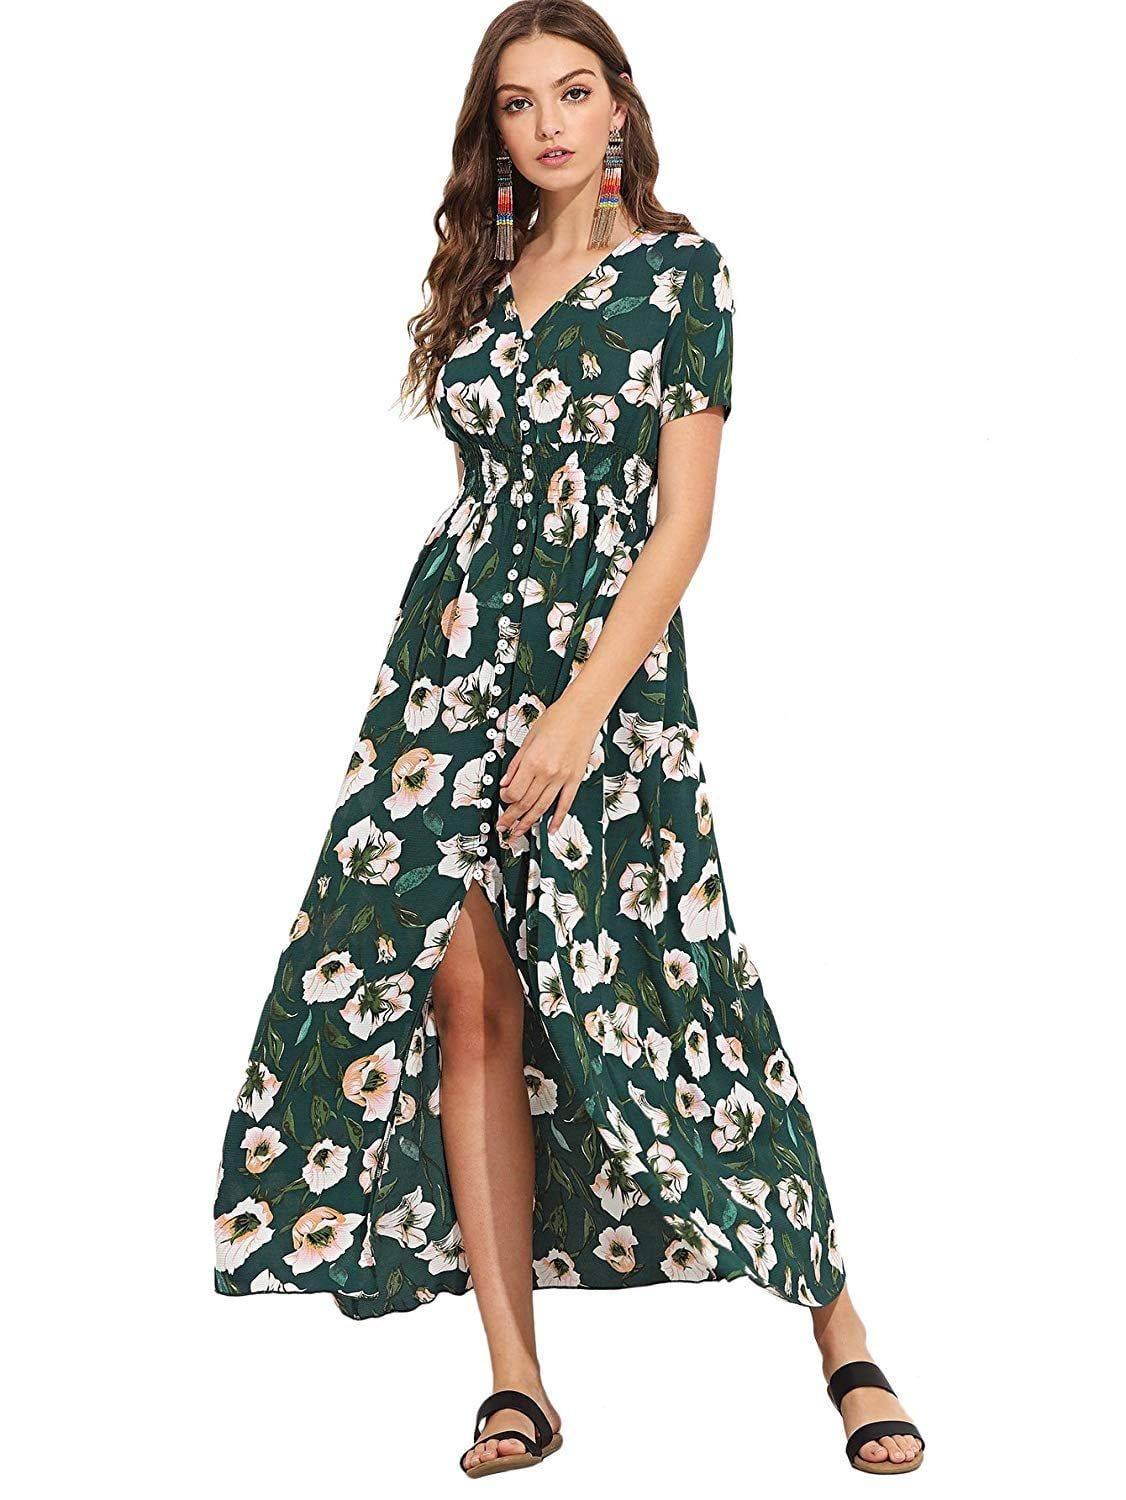 Customers Are Buying This 30 Maxi Dress From Amazon Like Crazy It Comes In 44 Colors Maxi Dress Party Maxi Dress Green Cheap Wedding Dresses Online